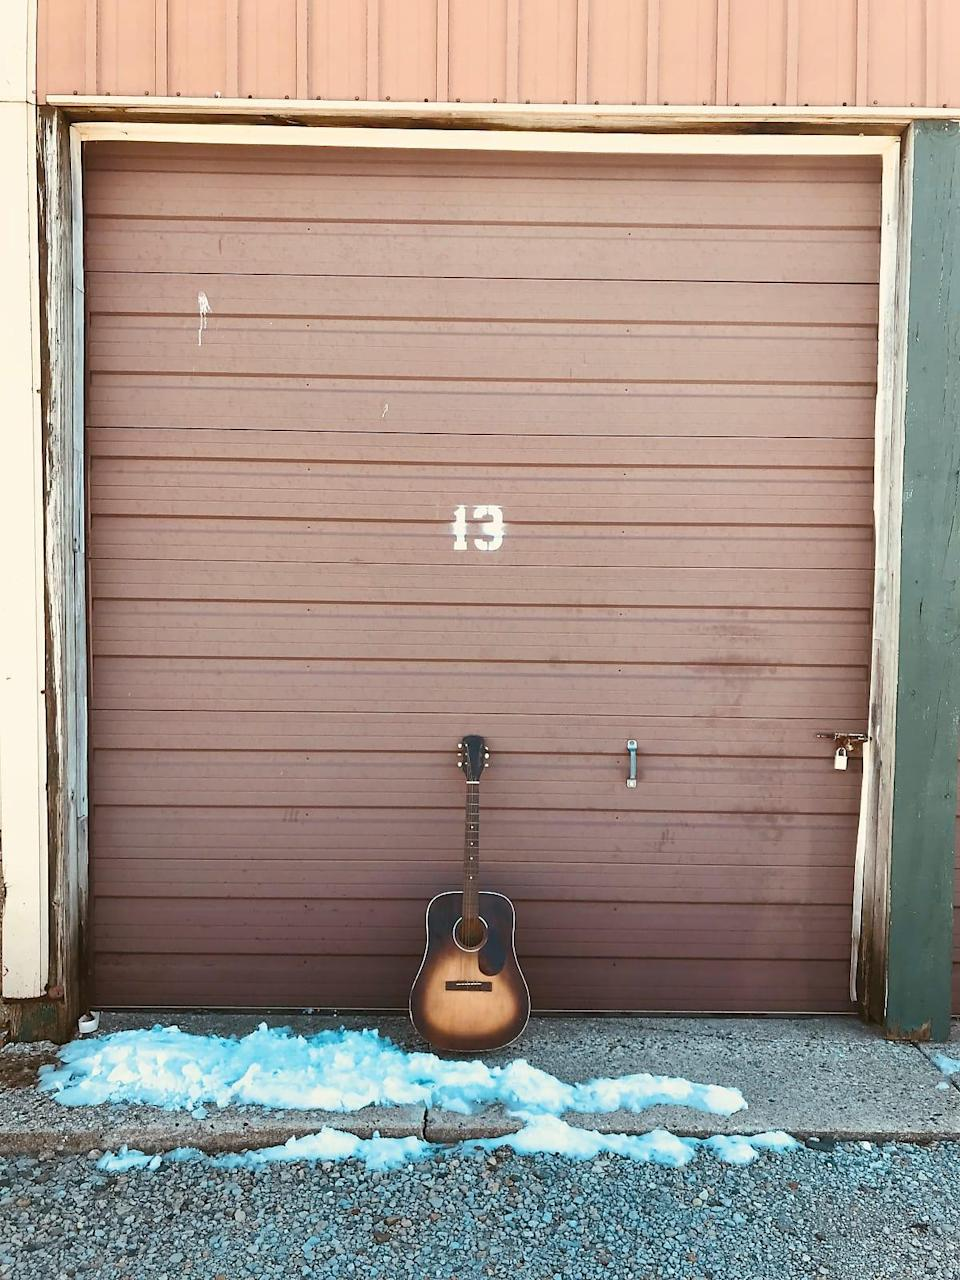 An acoustic guitar sits against a storage door with the number 13 on it